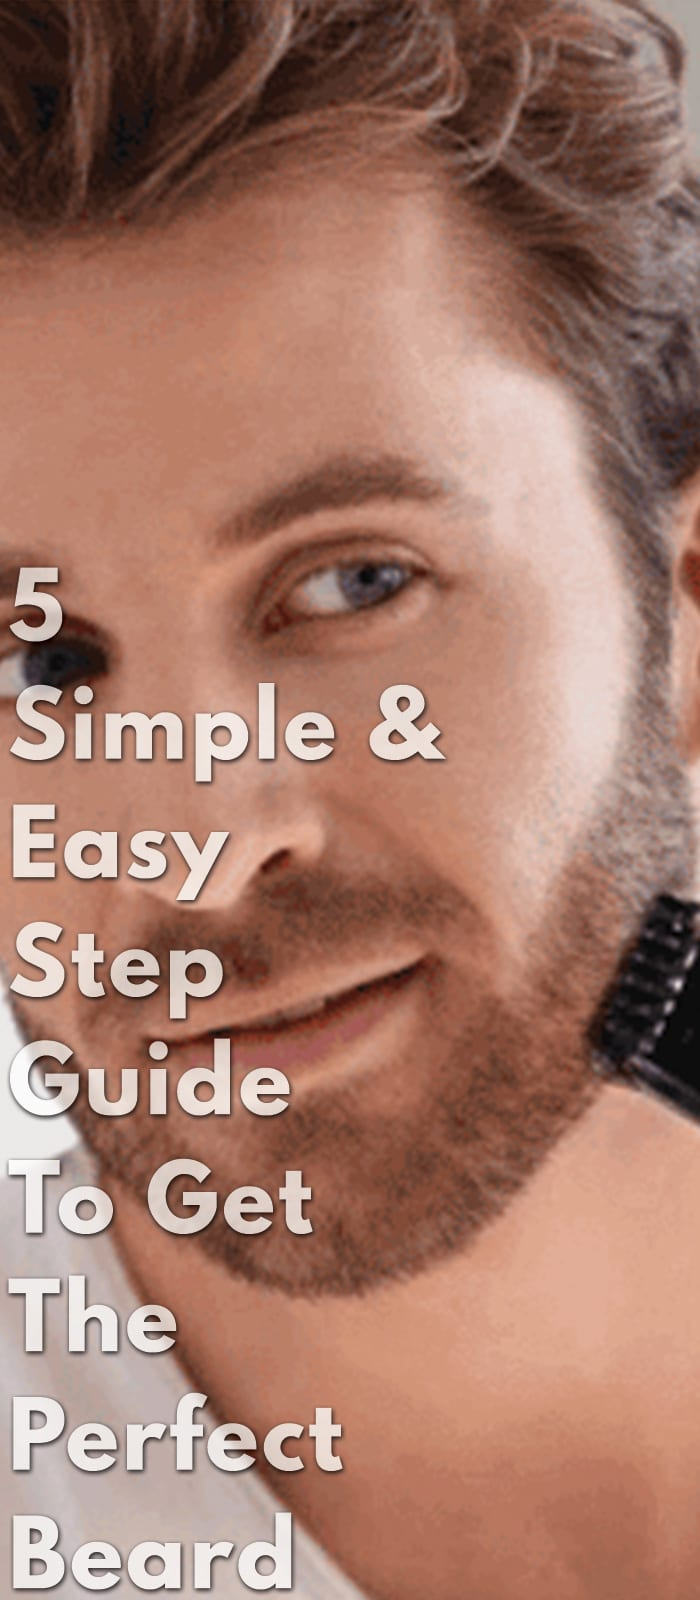 5-Simple-&-Easy-Step-Guide-To-Get-The-Perfect-Beard.